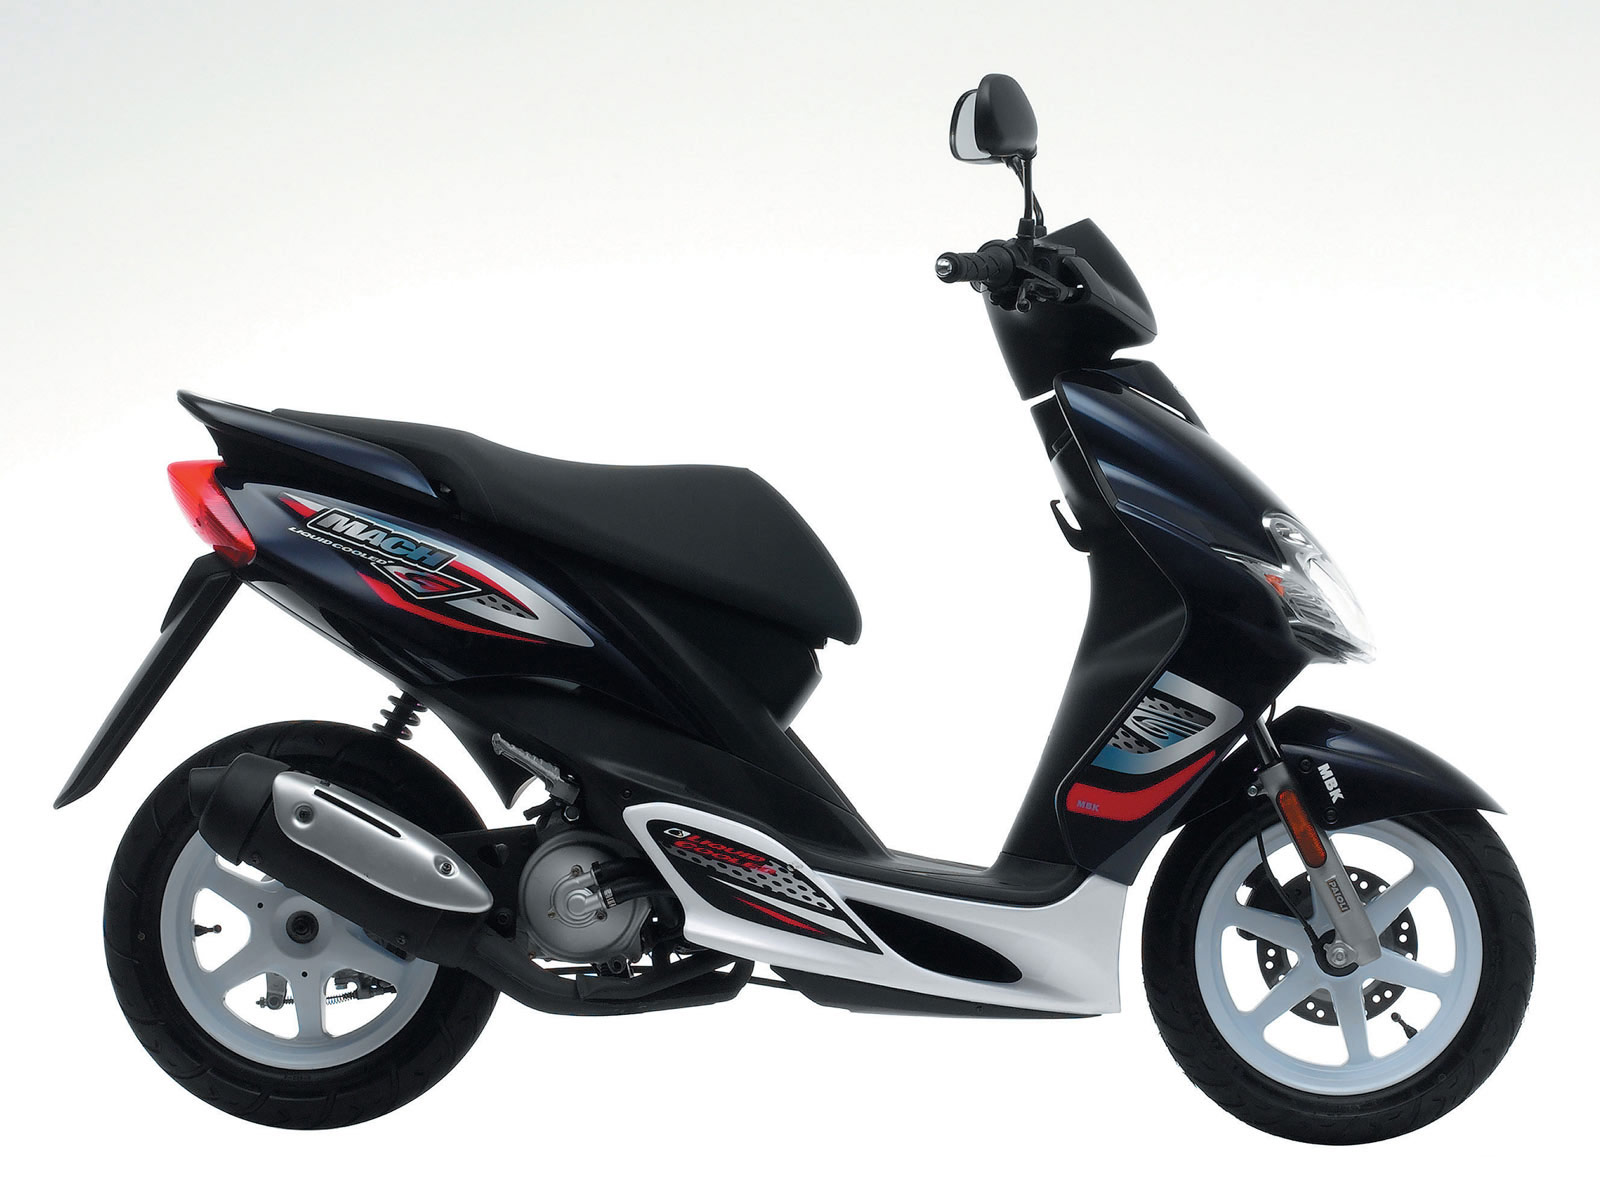 2006 Mbk Machg Lc Accident Lawyers Info Scooter Pictures